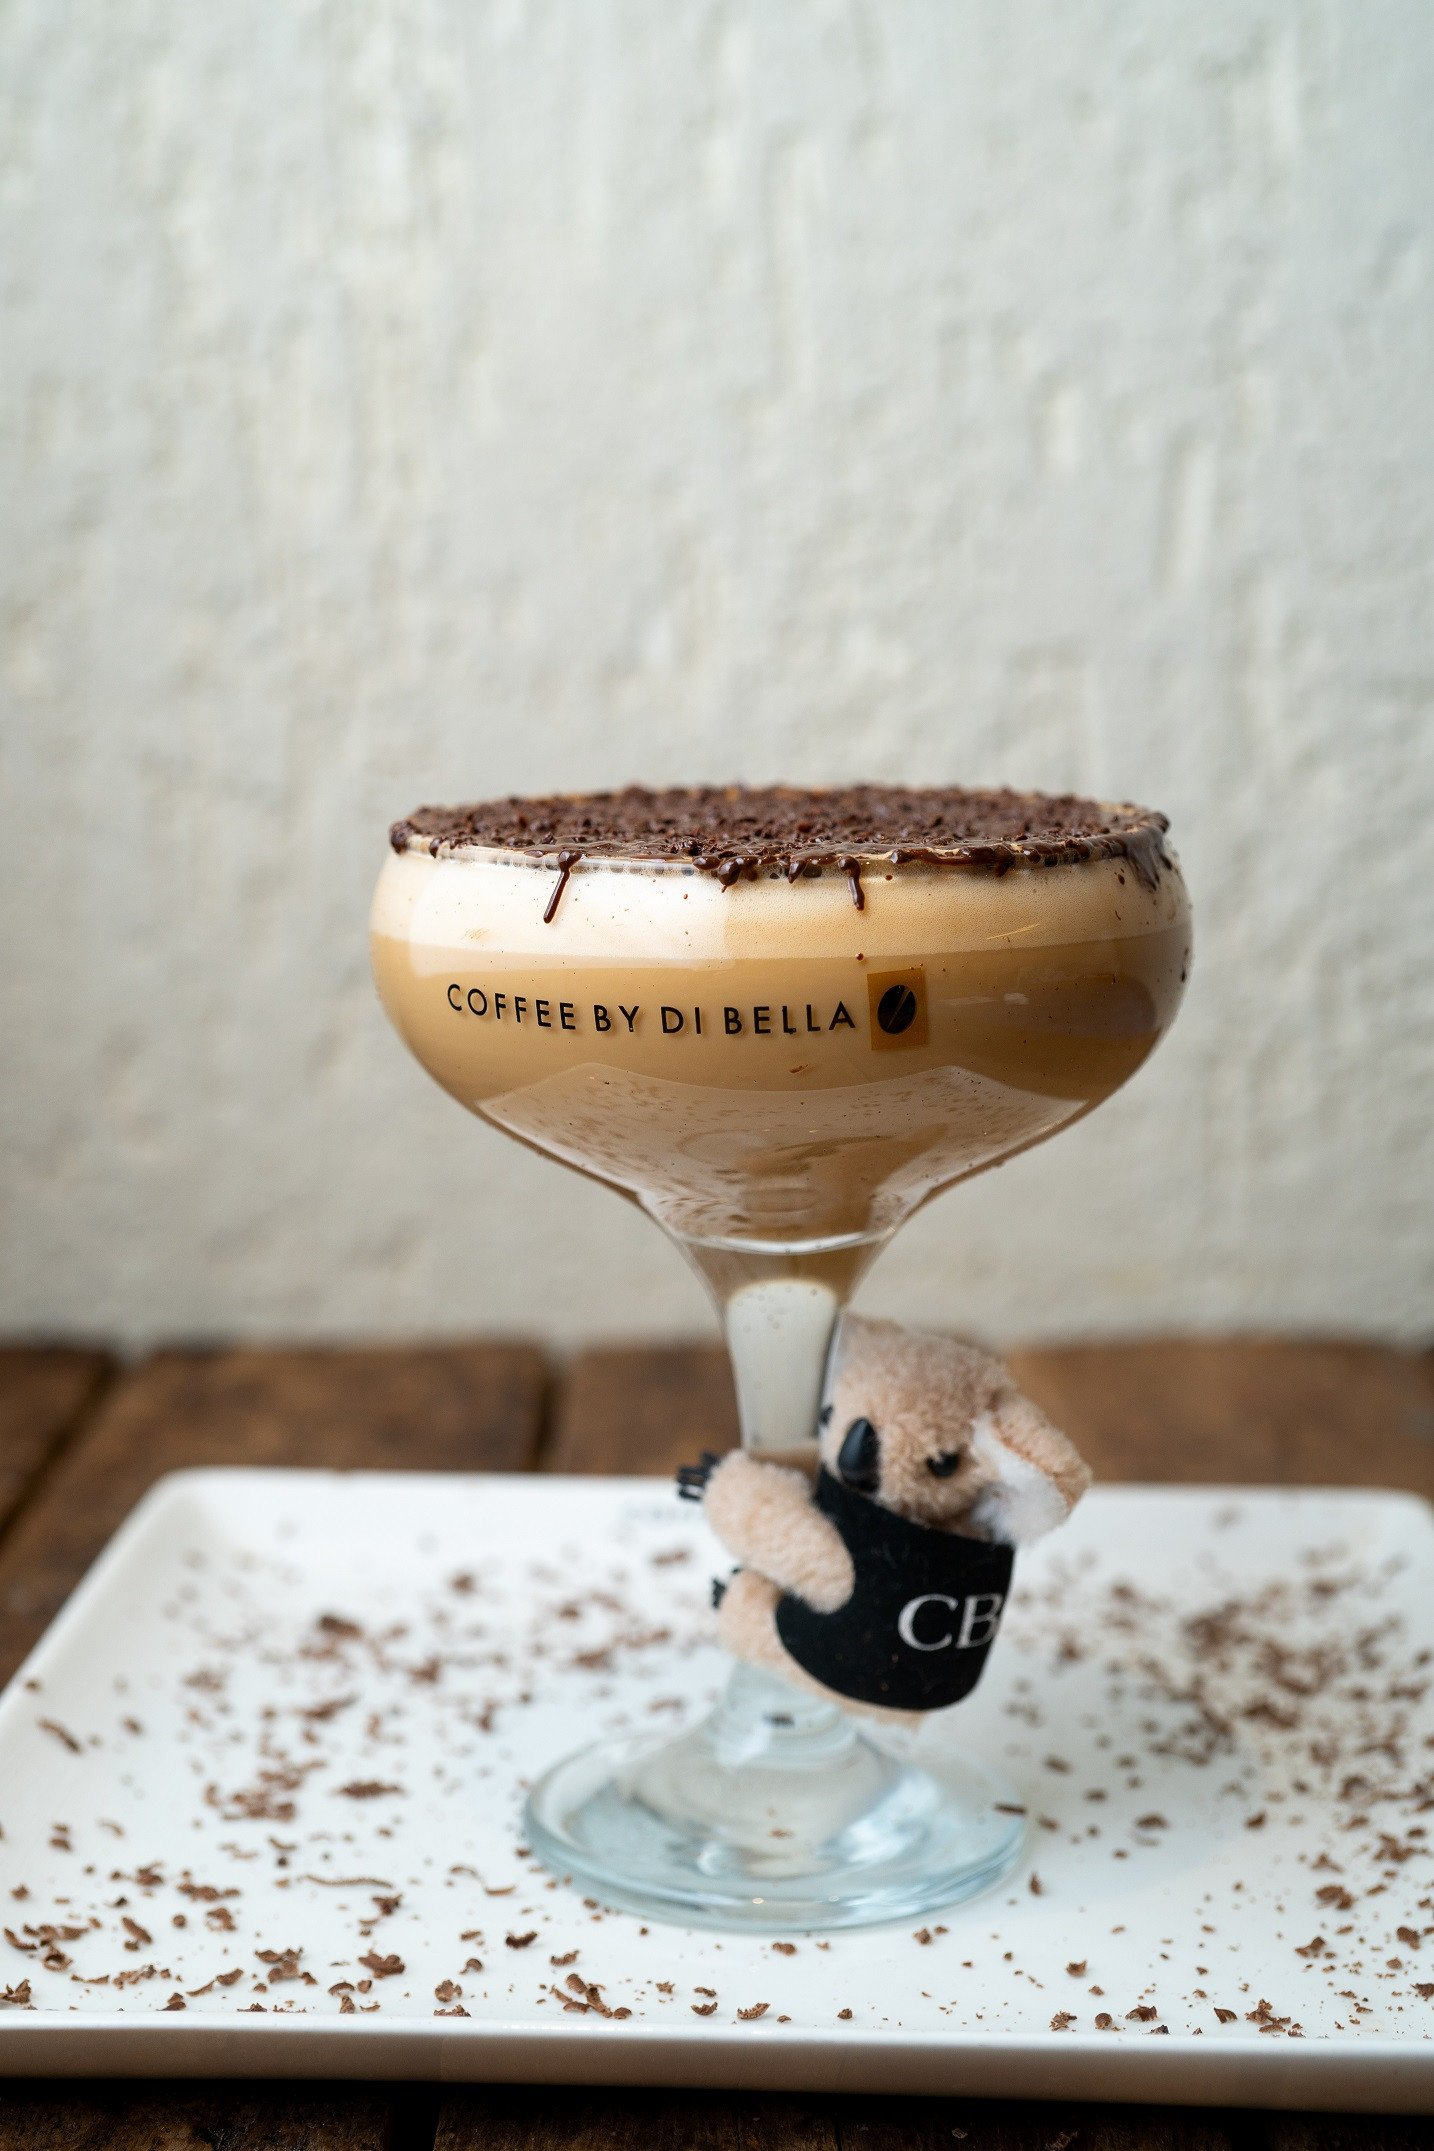 Coffee By Di Bella launches the Koalaccino for a limited period of time